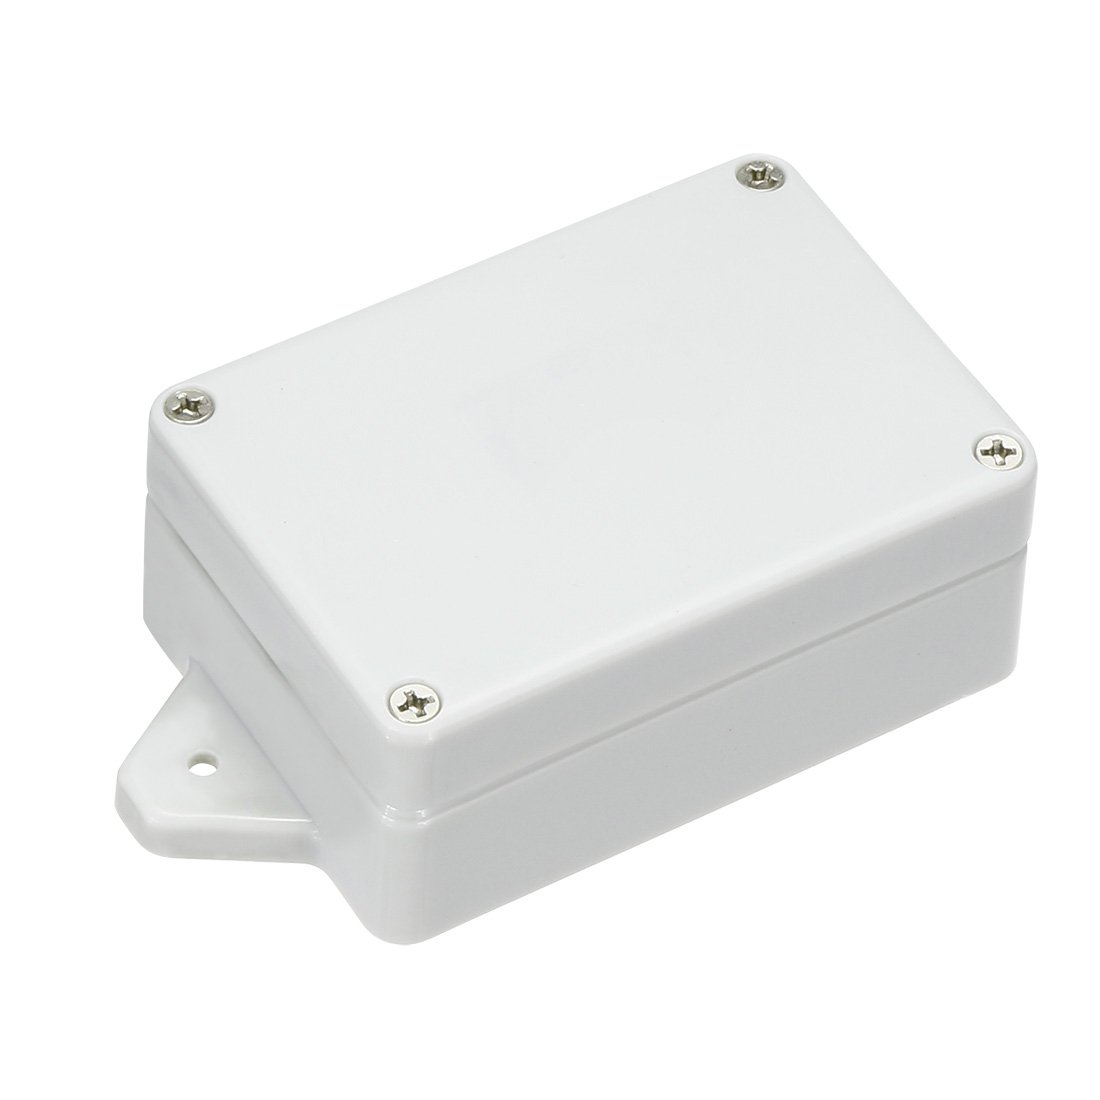 uxcell 3.27x2.28x1.38(83mmx58mmx35mm) ABS Junction Box Universal Project Enclosure a18013000ux0093